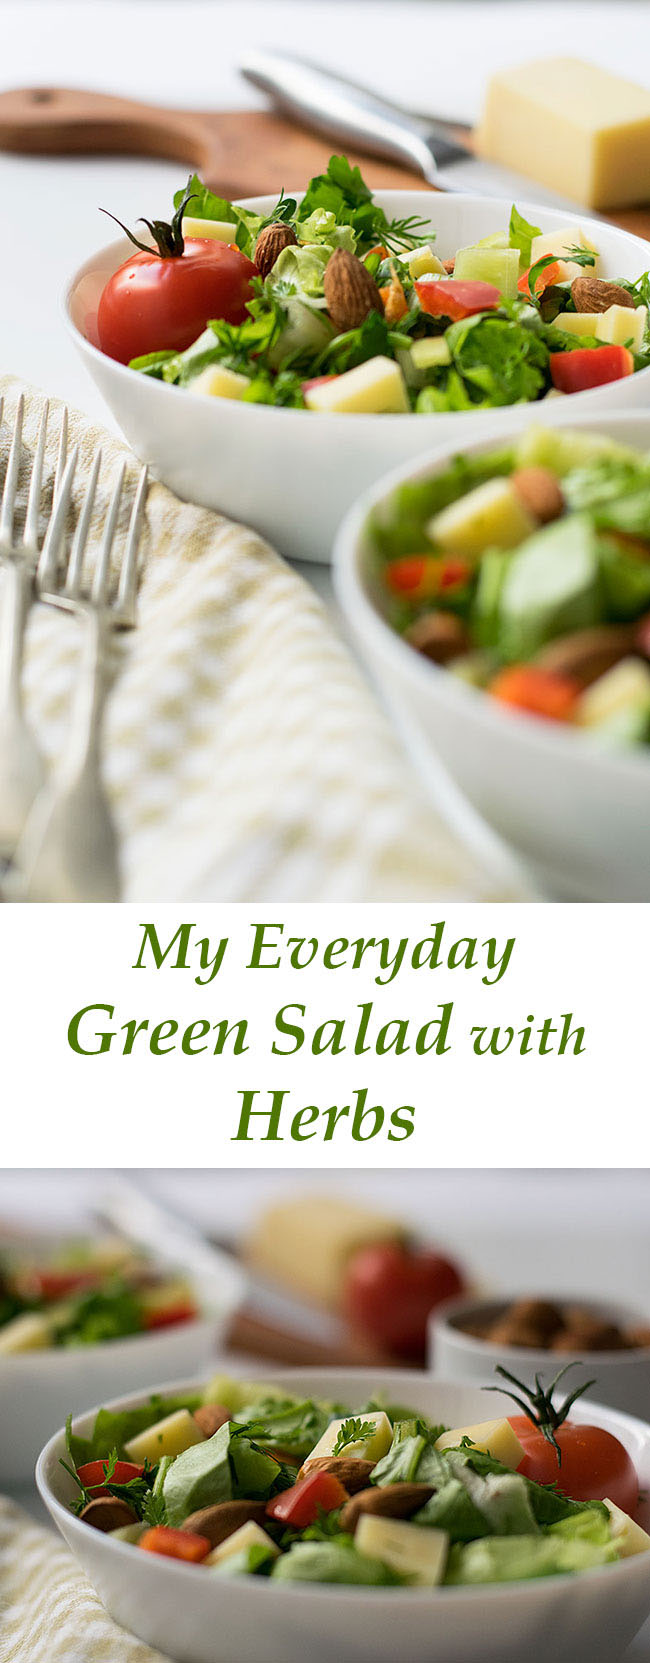 my-everyday-green-salad-with-herbs-6